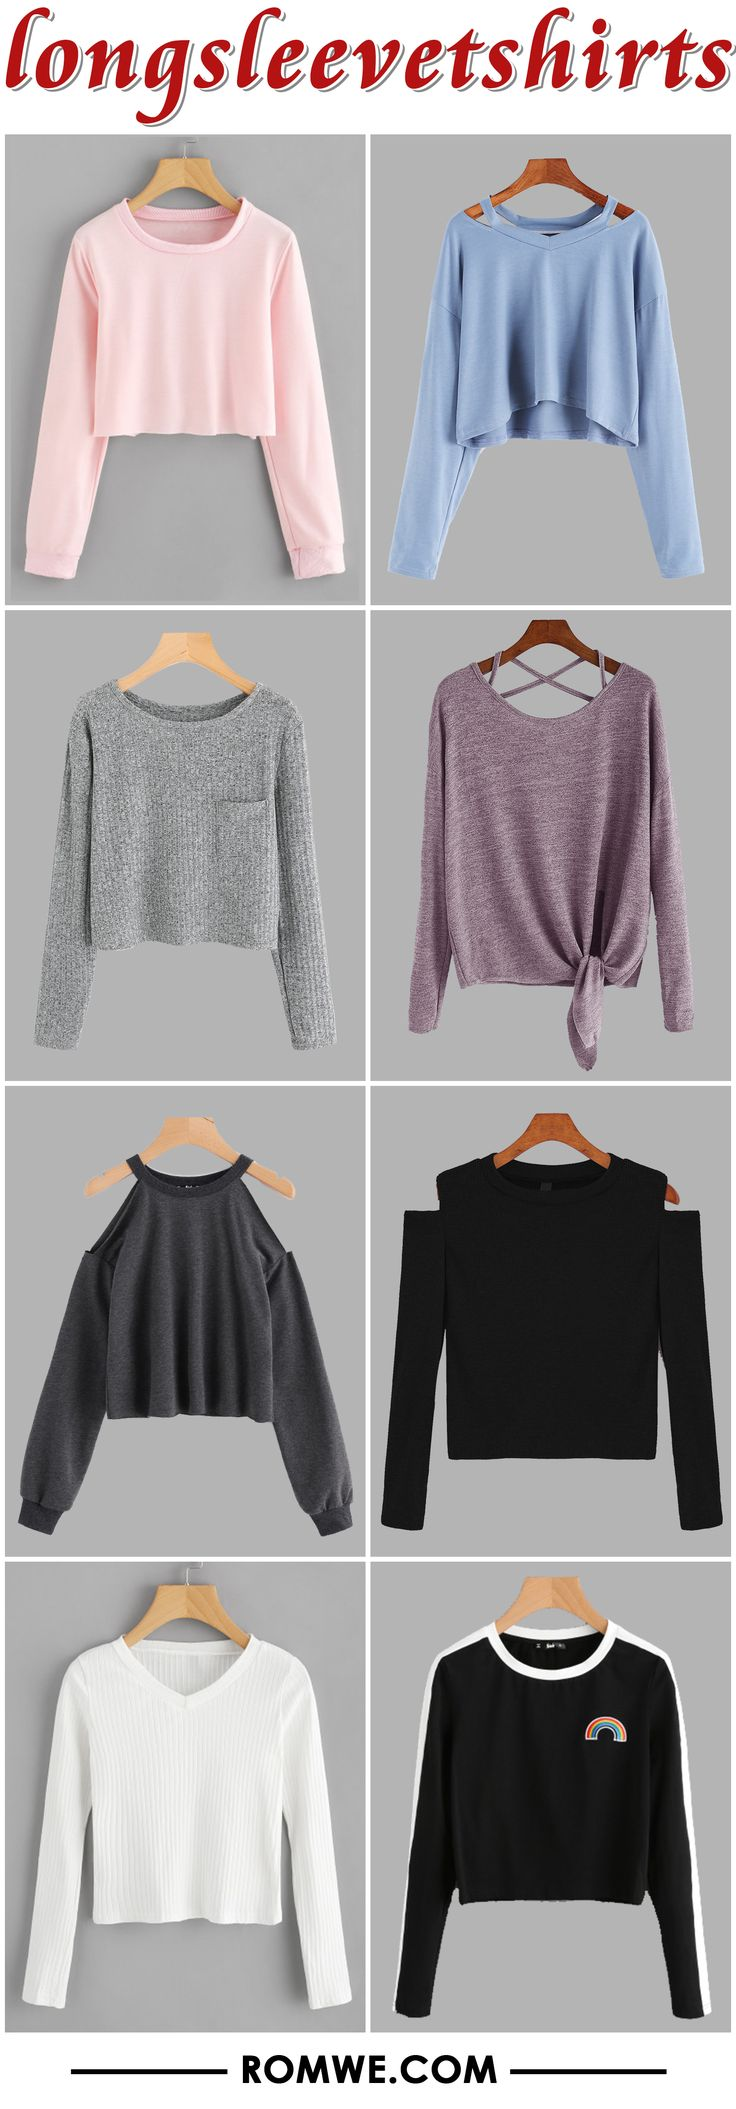 casual long sleeve t shirts from romwe.com